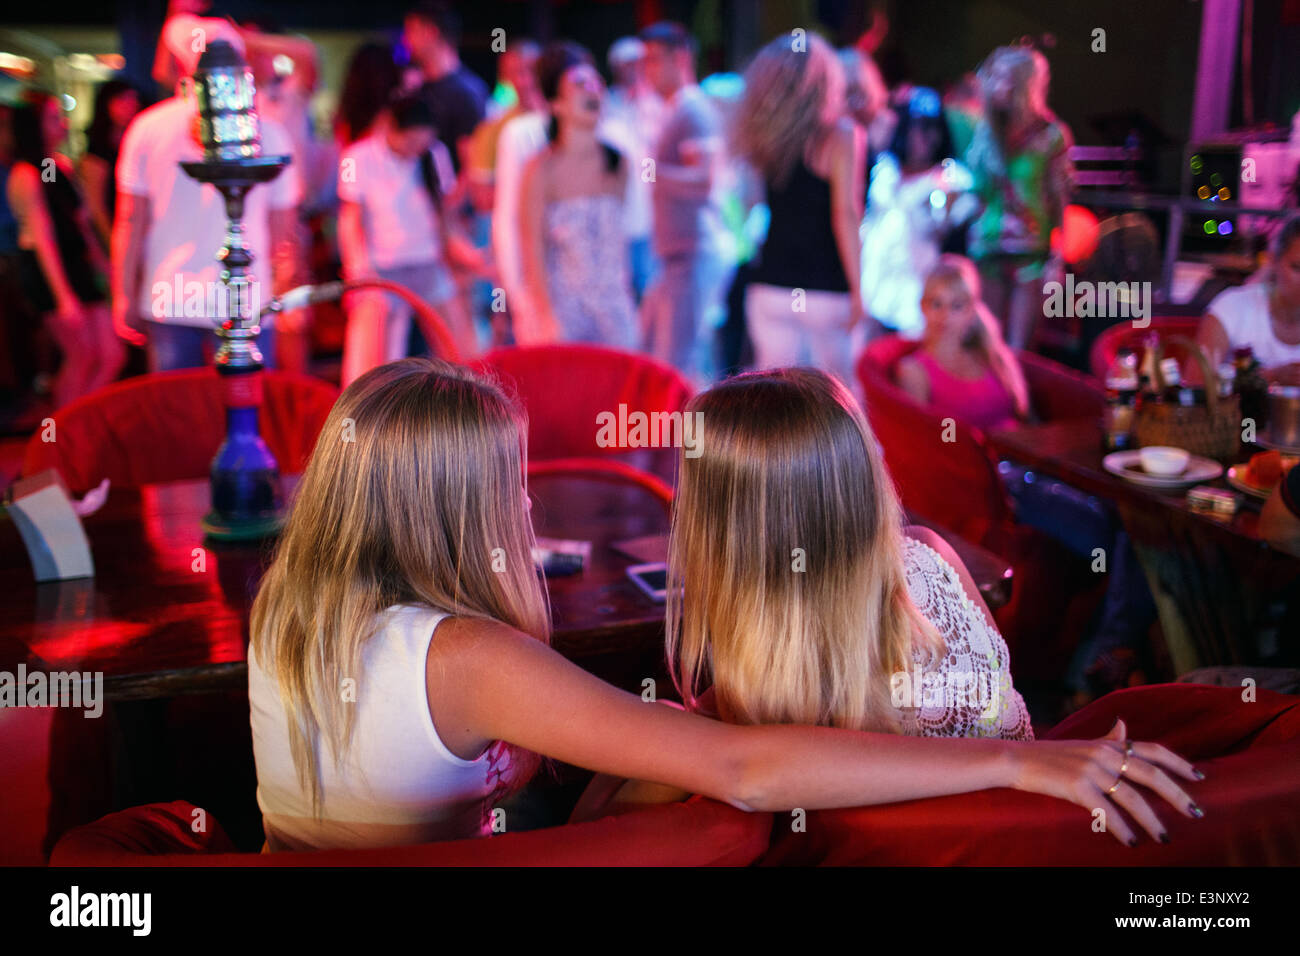 Russian tourists at a party in a bar catering for Russians on Walking Street in Pattaya, Thailand - Stock Image